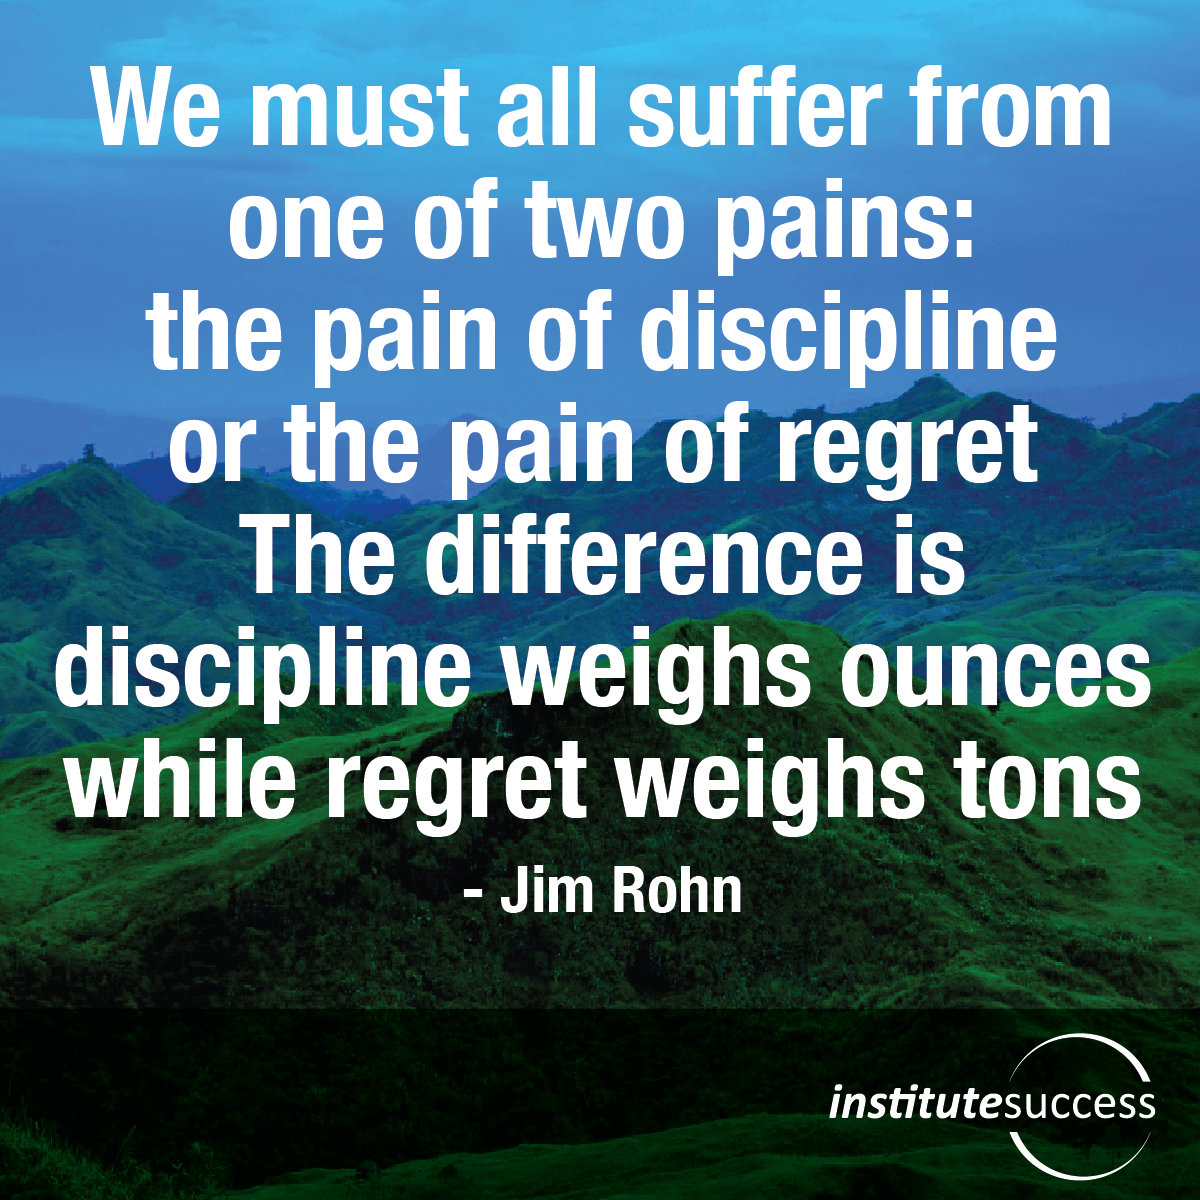 We must all suffer from one of two pains: the pain of discipline or the pain of regret. The difference is discipline weighs ounces while regret weighs tons – Jim Rohn